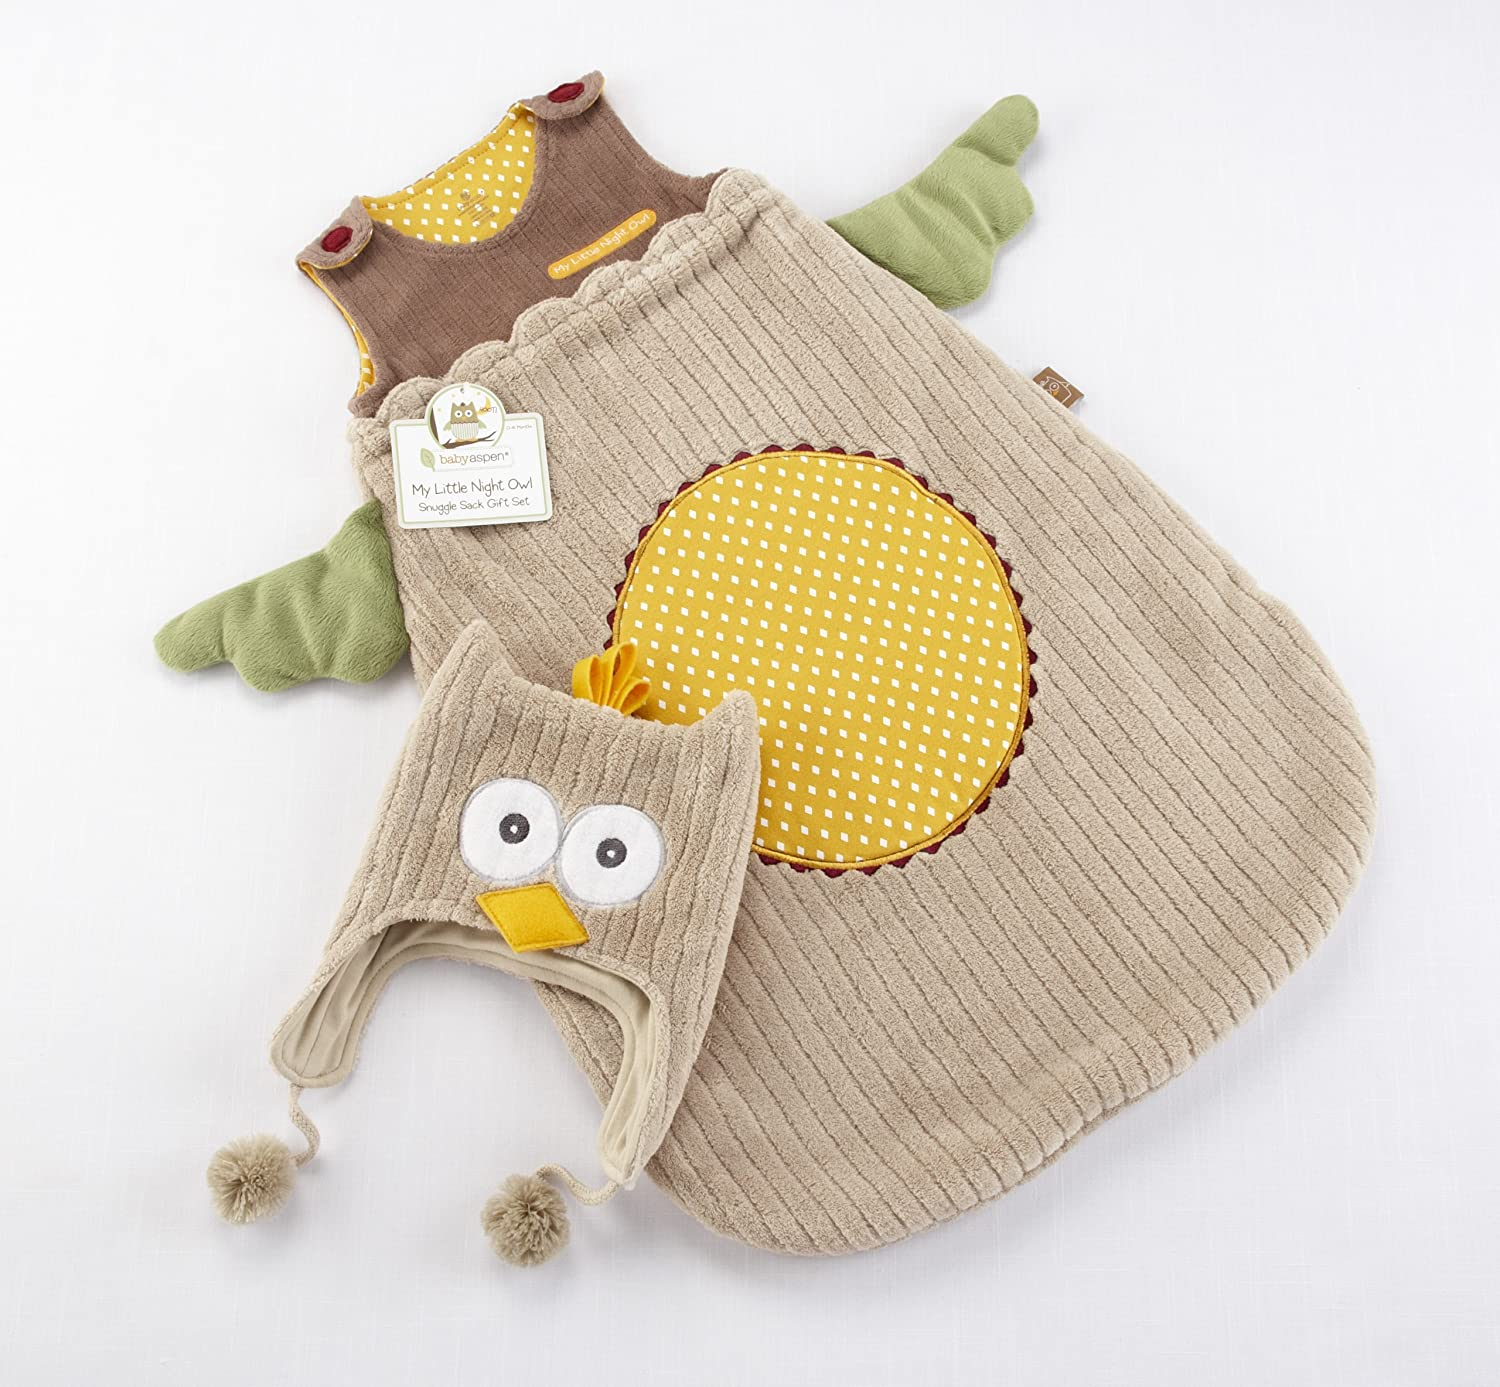 Baby AspenMy Little Night Owl Snuggle Sack and Cap 0-6 months BA15002NA